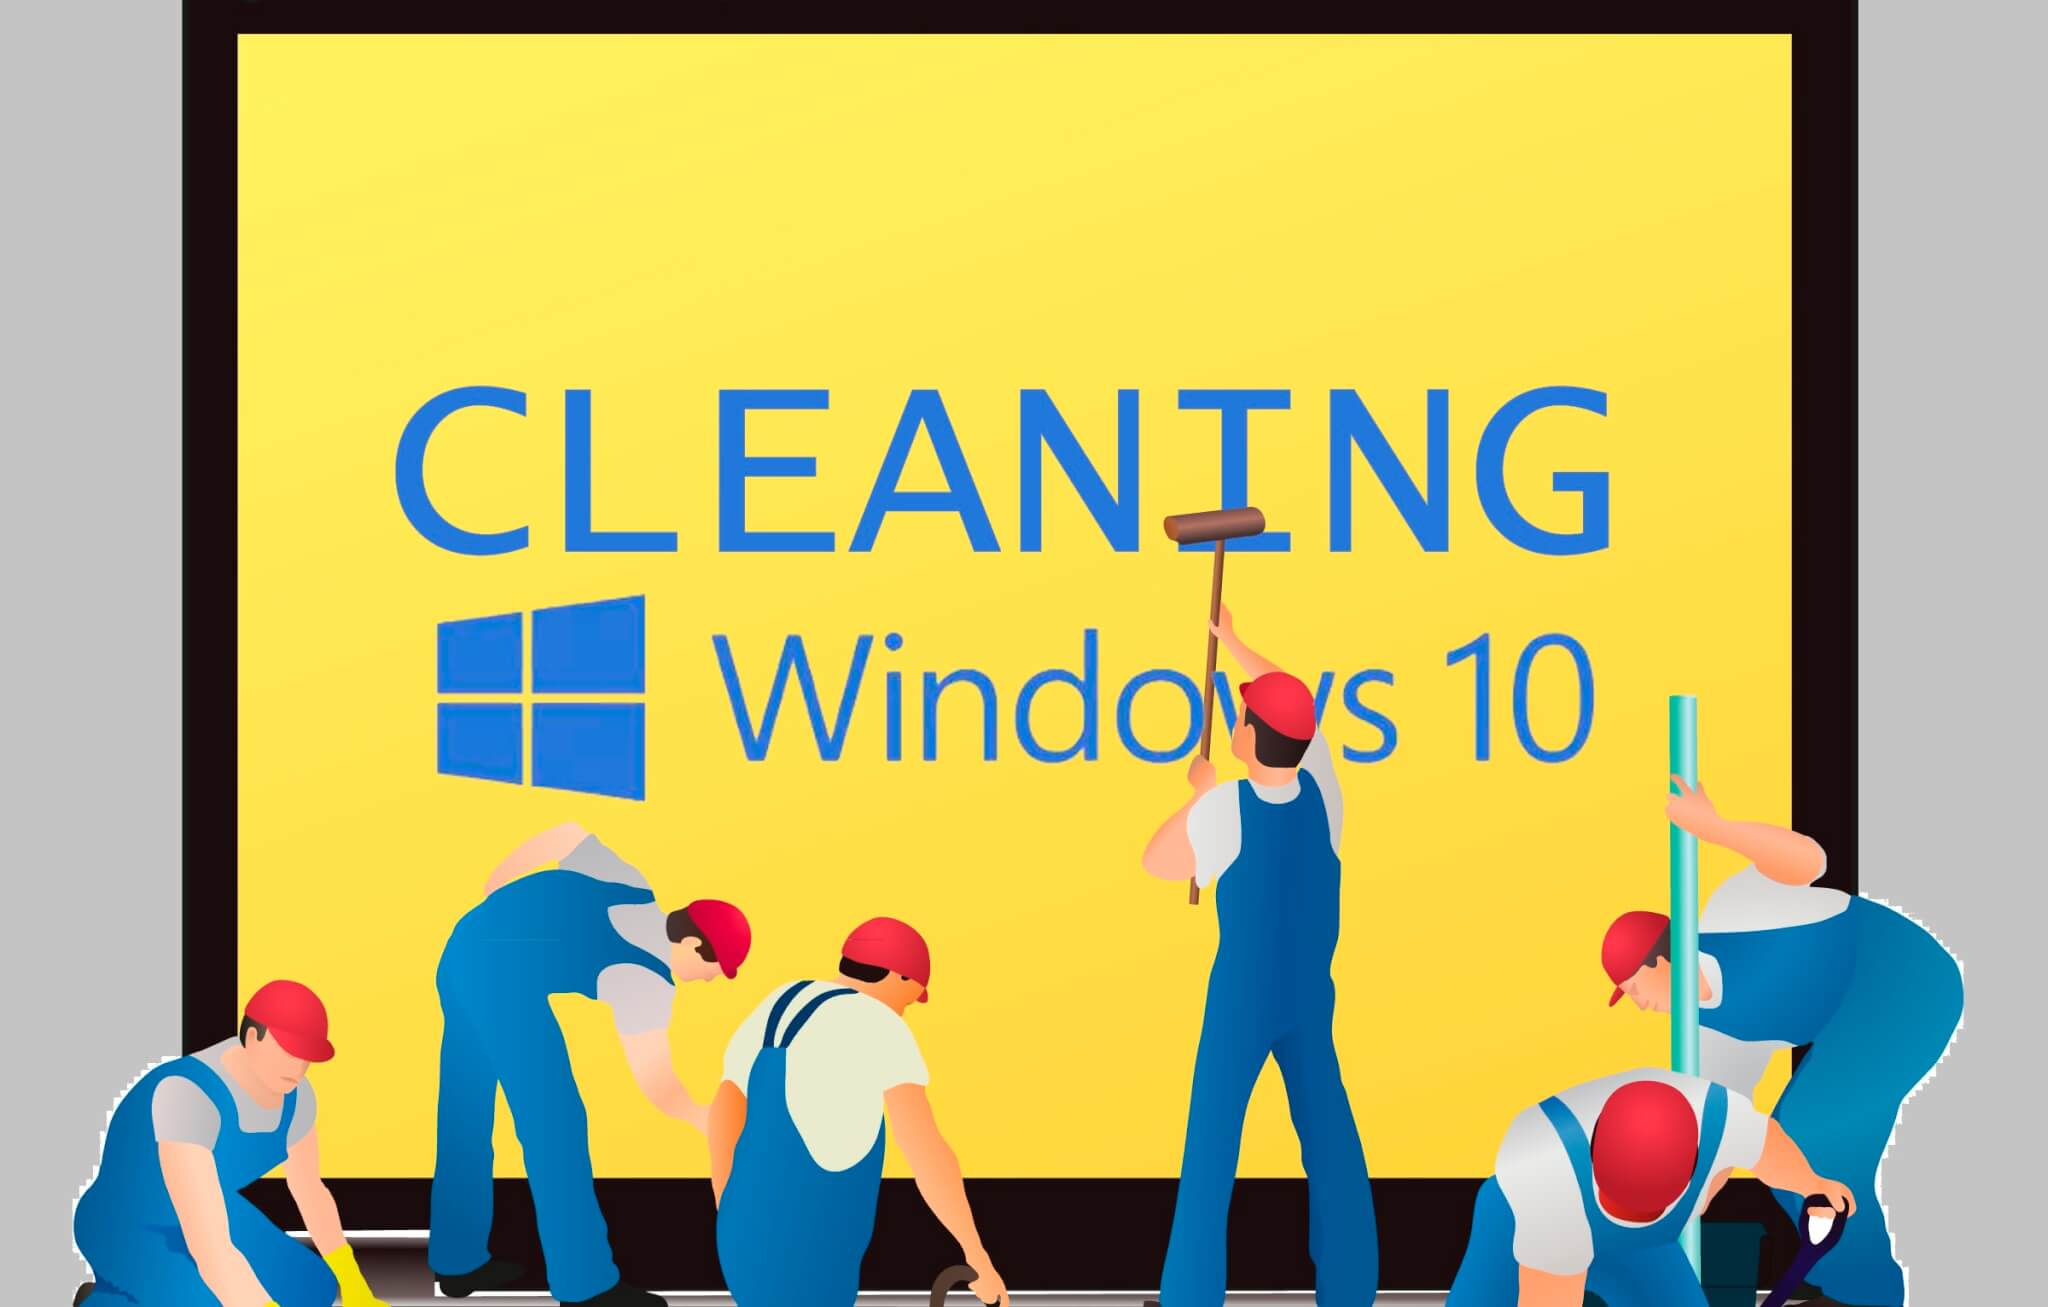 Clean win 10